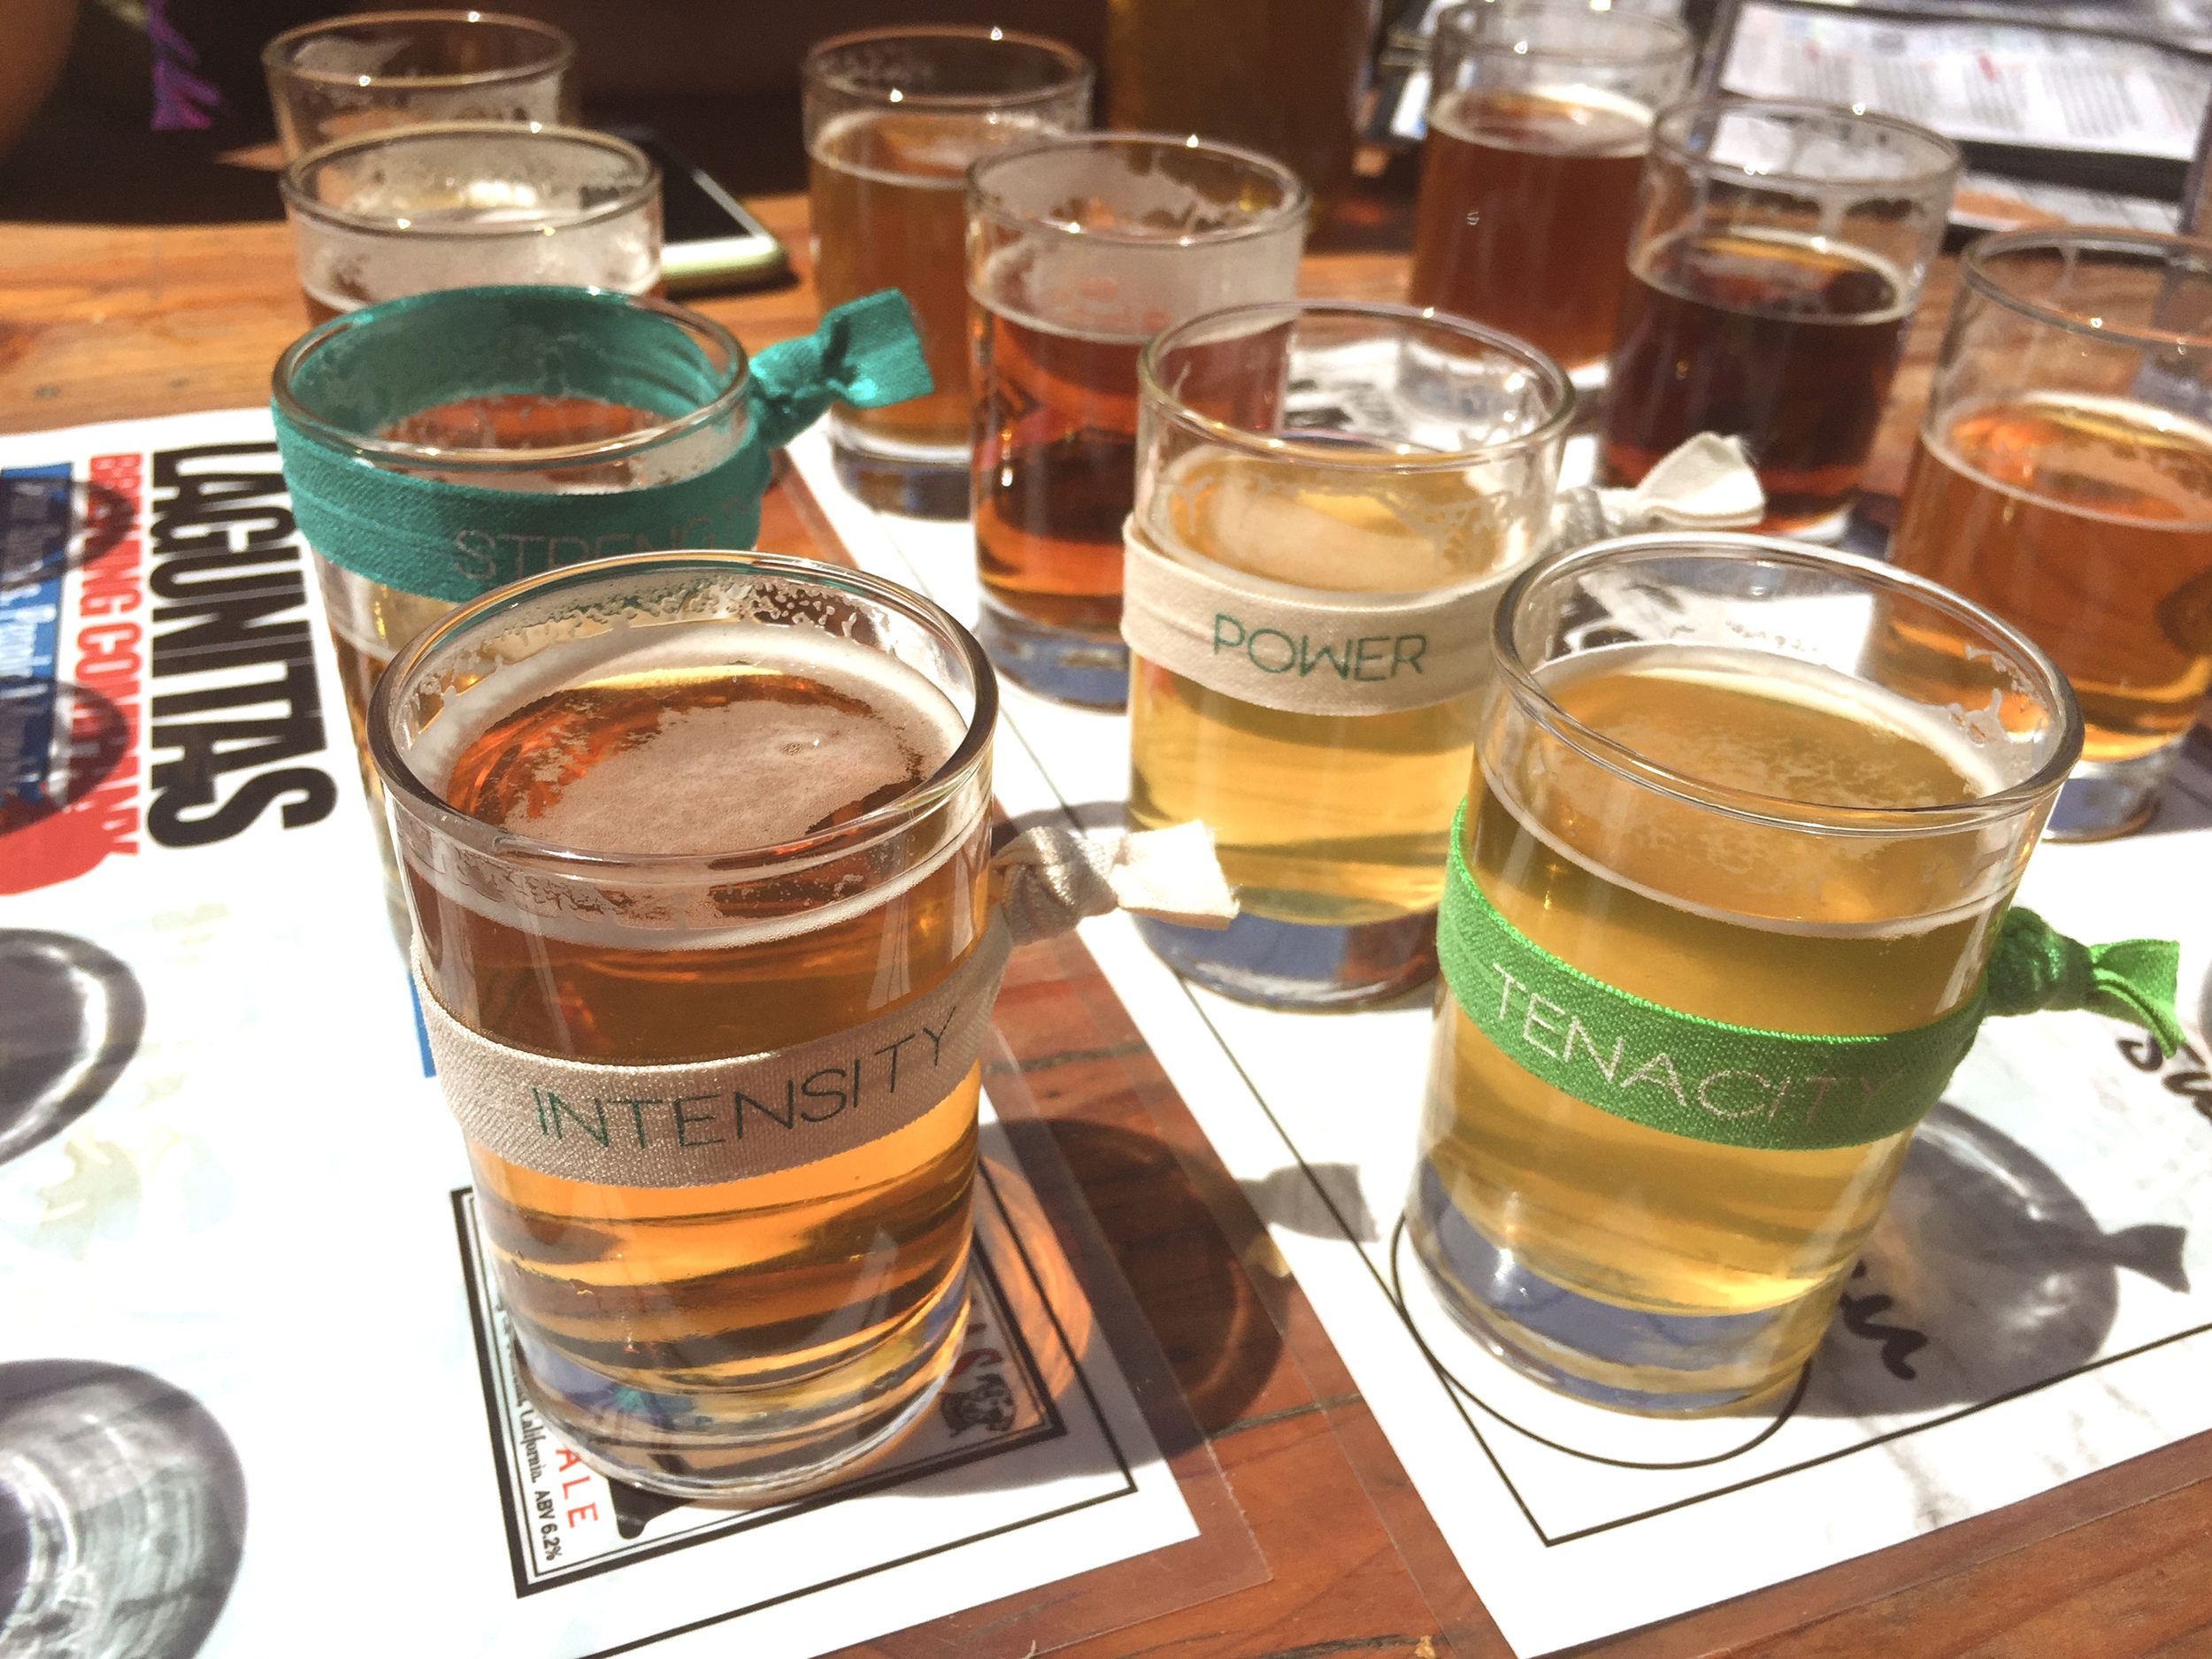 The taste of 16 shots in total of Lagunitas craft beer was bittersweet in many ways